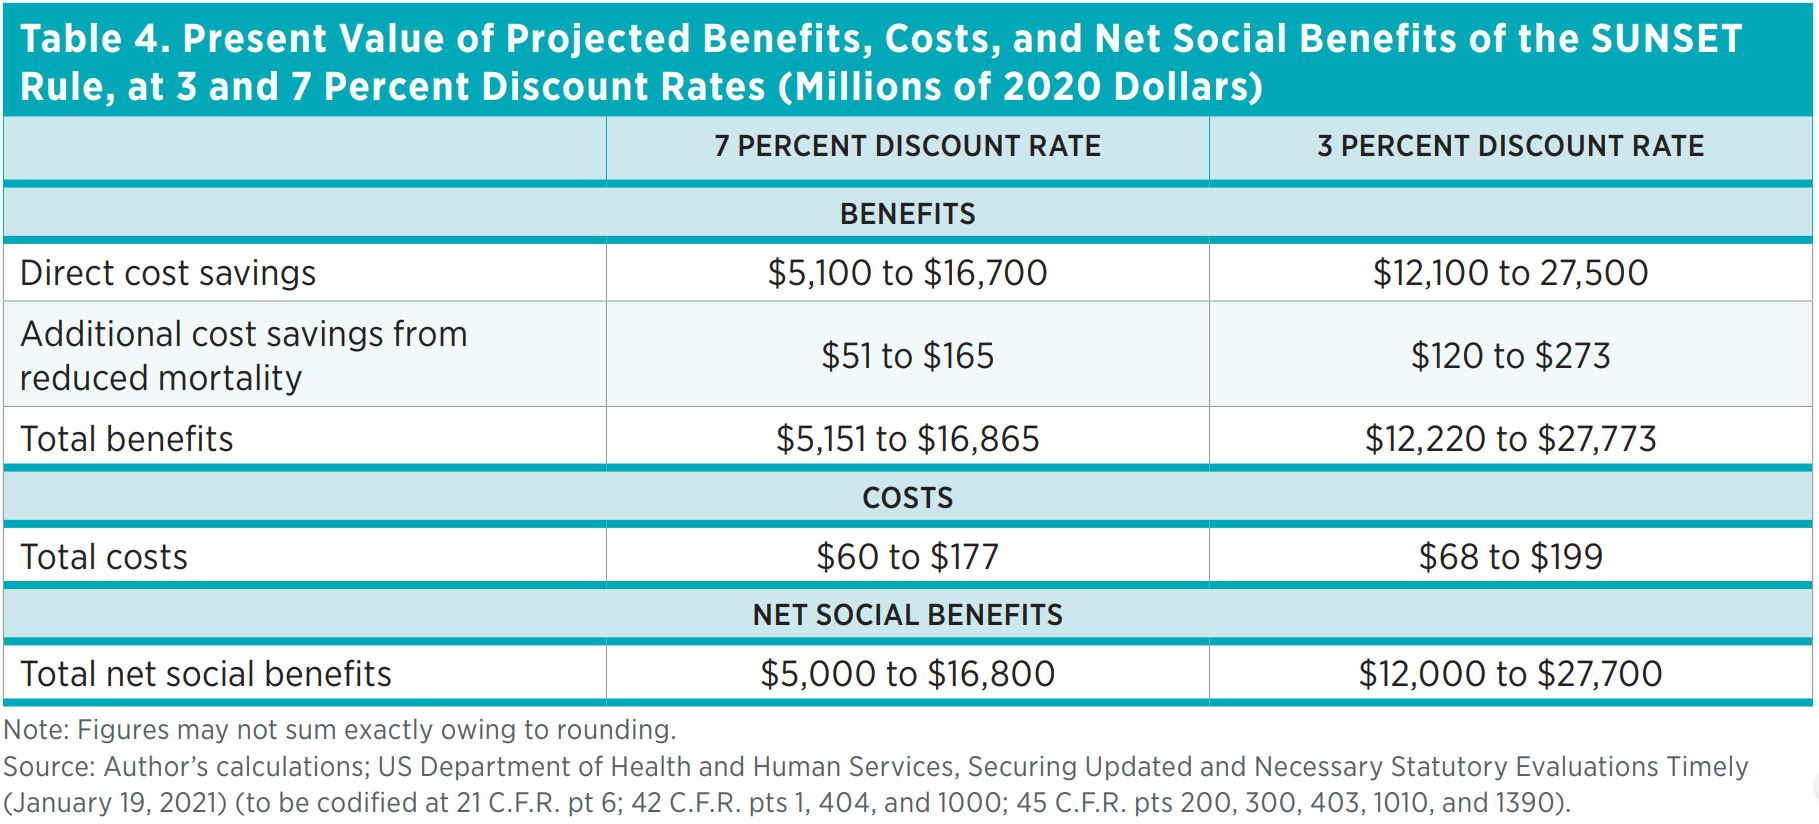 Table 4. Present Value of Projected Benefits, Costs, and Net Social Benefits of the SUNSET Rule, at 3 and 7 Percent Discount Rates (Millions of 2020 Dollars)    7 Percent Discount Rate  3 Percent Discount Rate  Benefits  Direct cost savings  $5,100 to $16